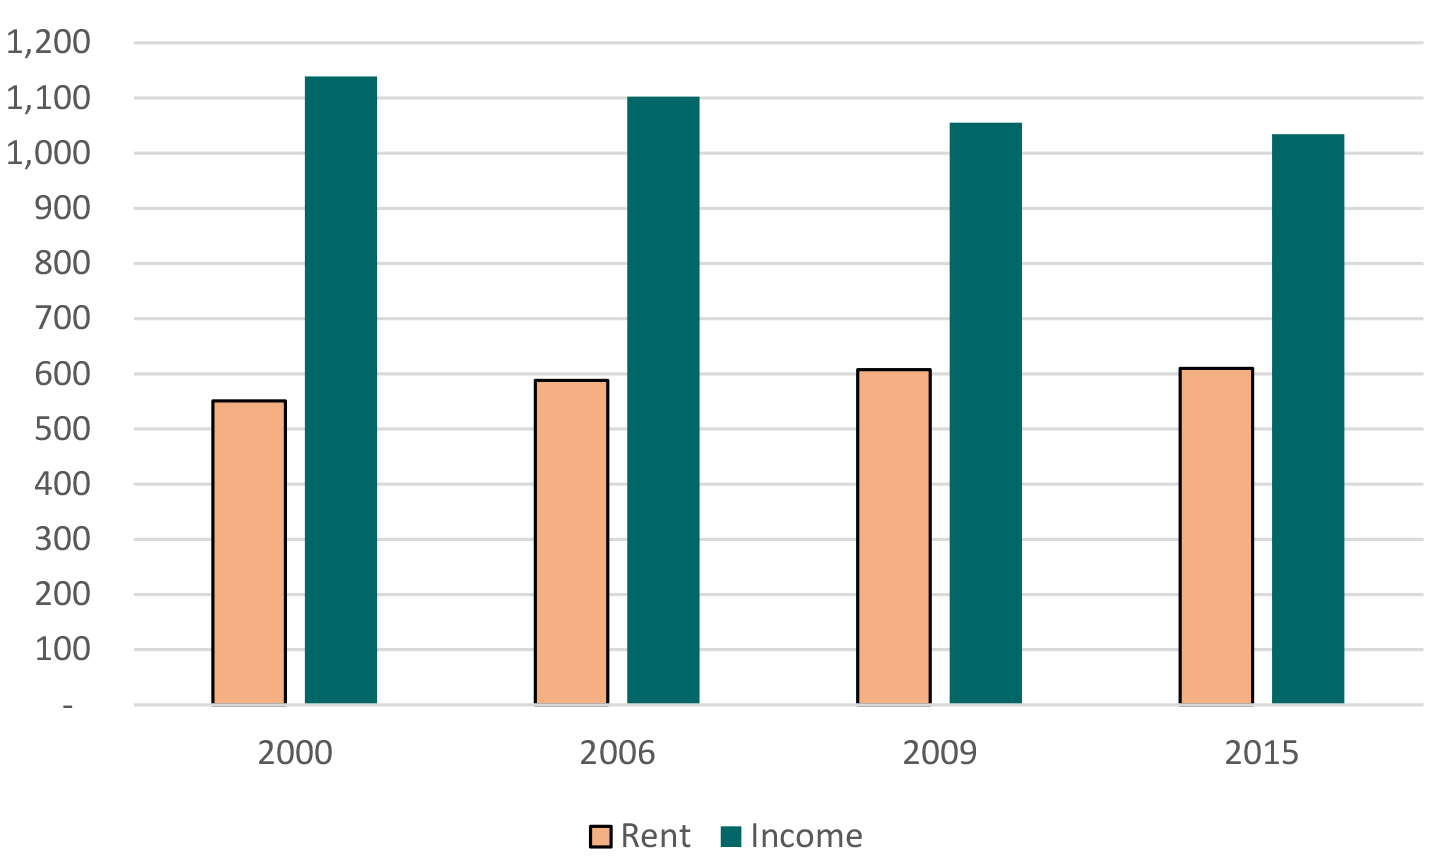 Figure 2. Rent burdens for low-income families have risen over time. See accisible link for data description.